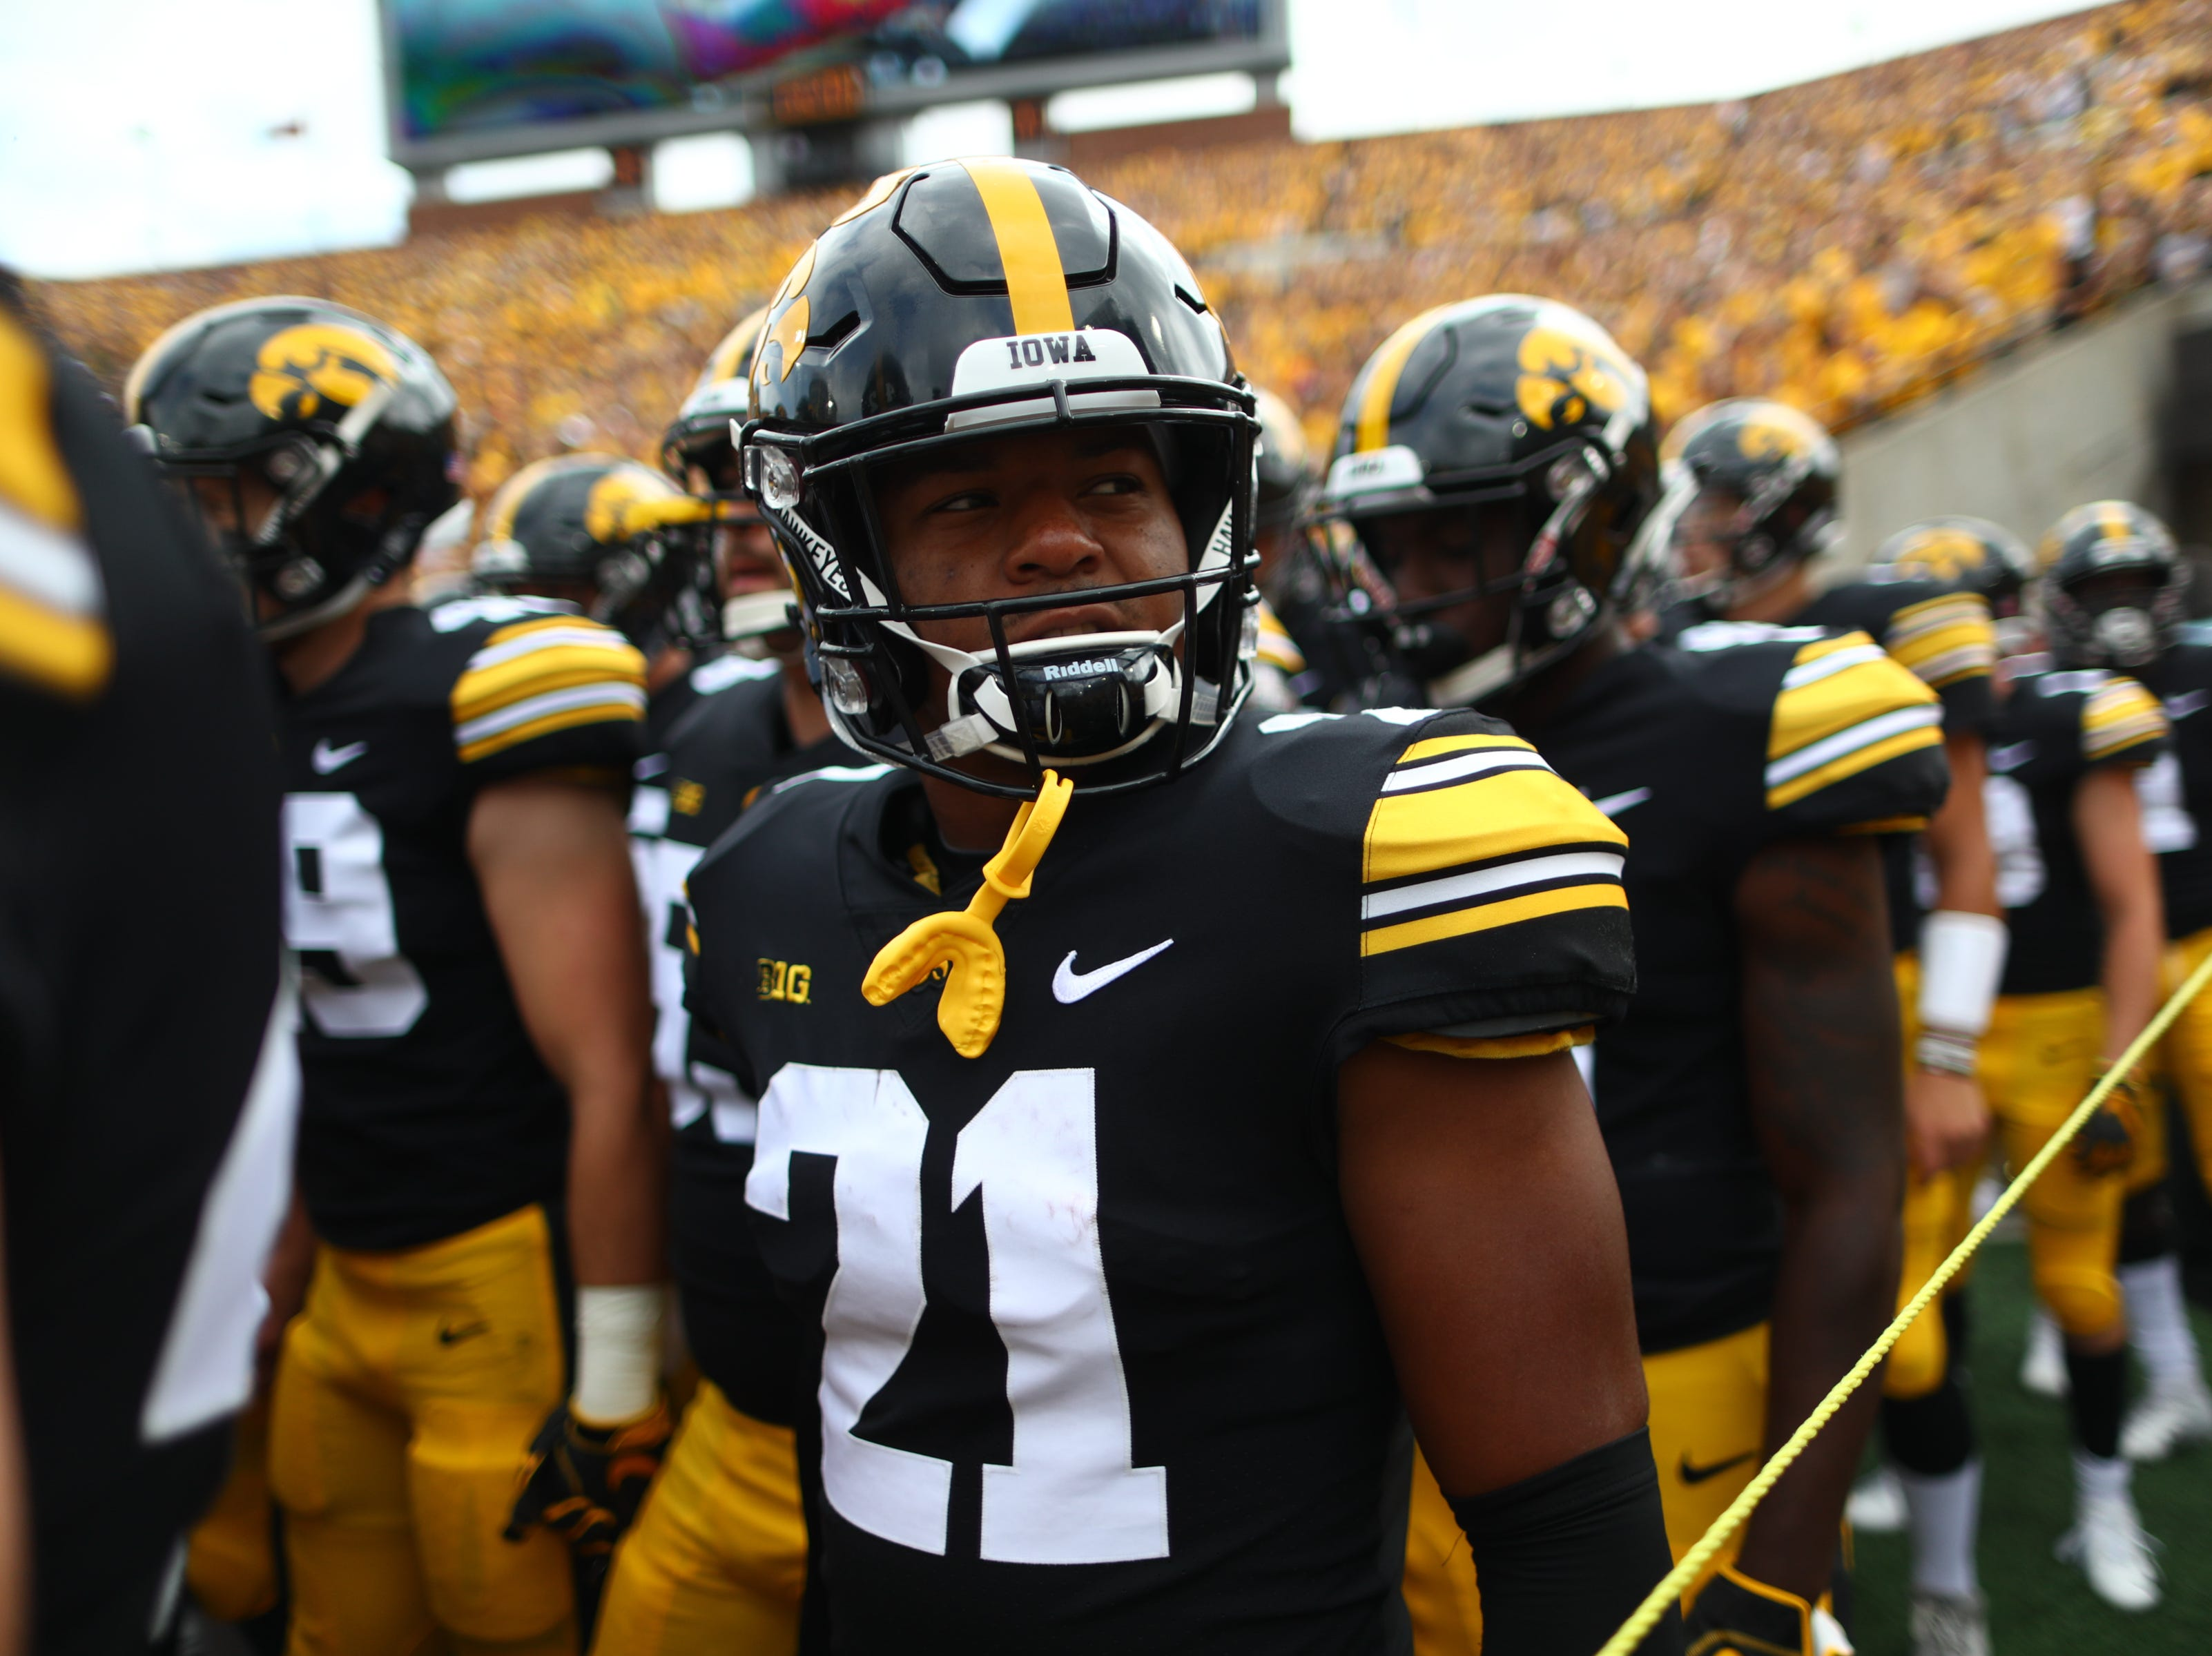 Iowa's Ivory Kelly-Martin waits to storm the field with teammates before the Hawkeyes' game against Northern Illinois at Kinnick Stadium on Satuday, Sept. 1, 2018.